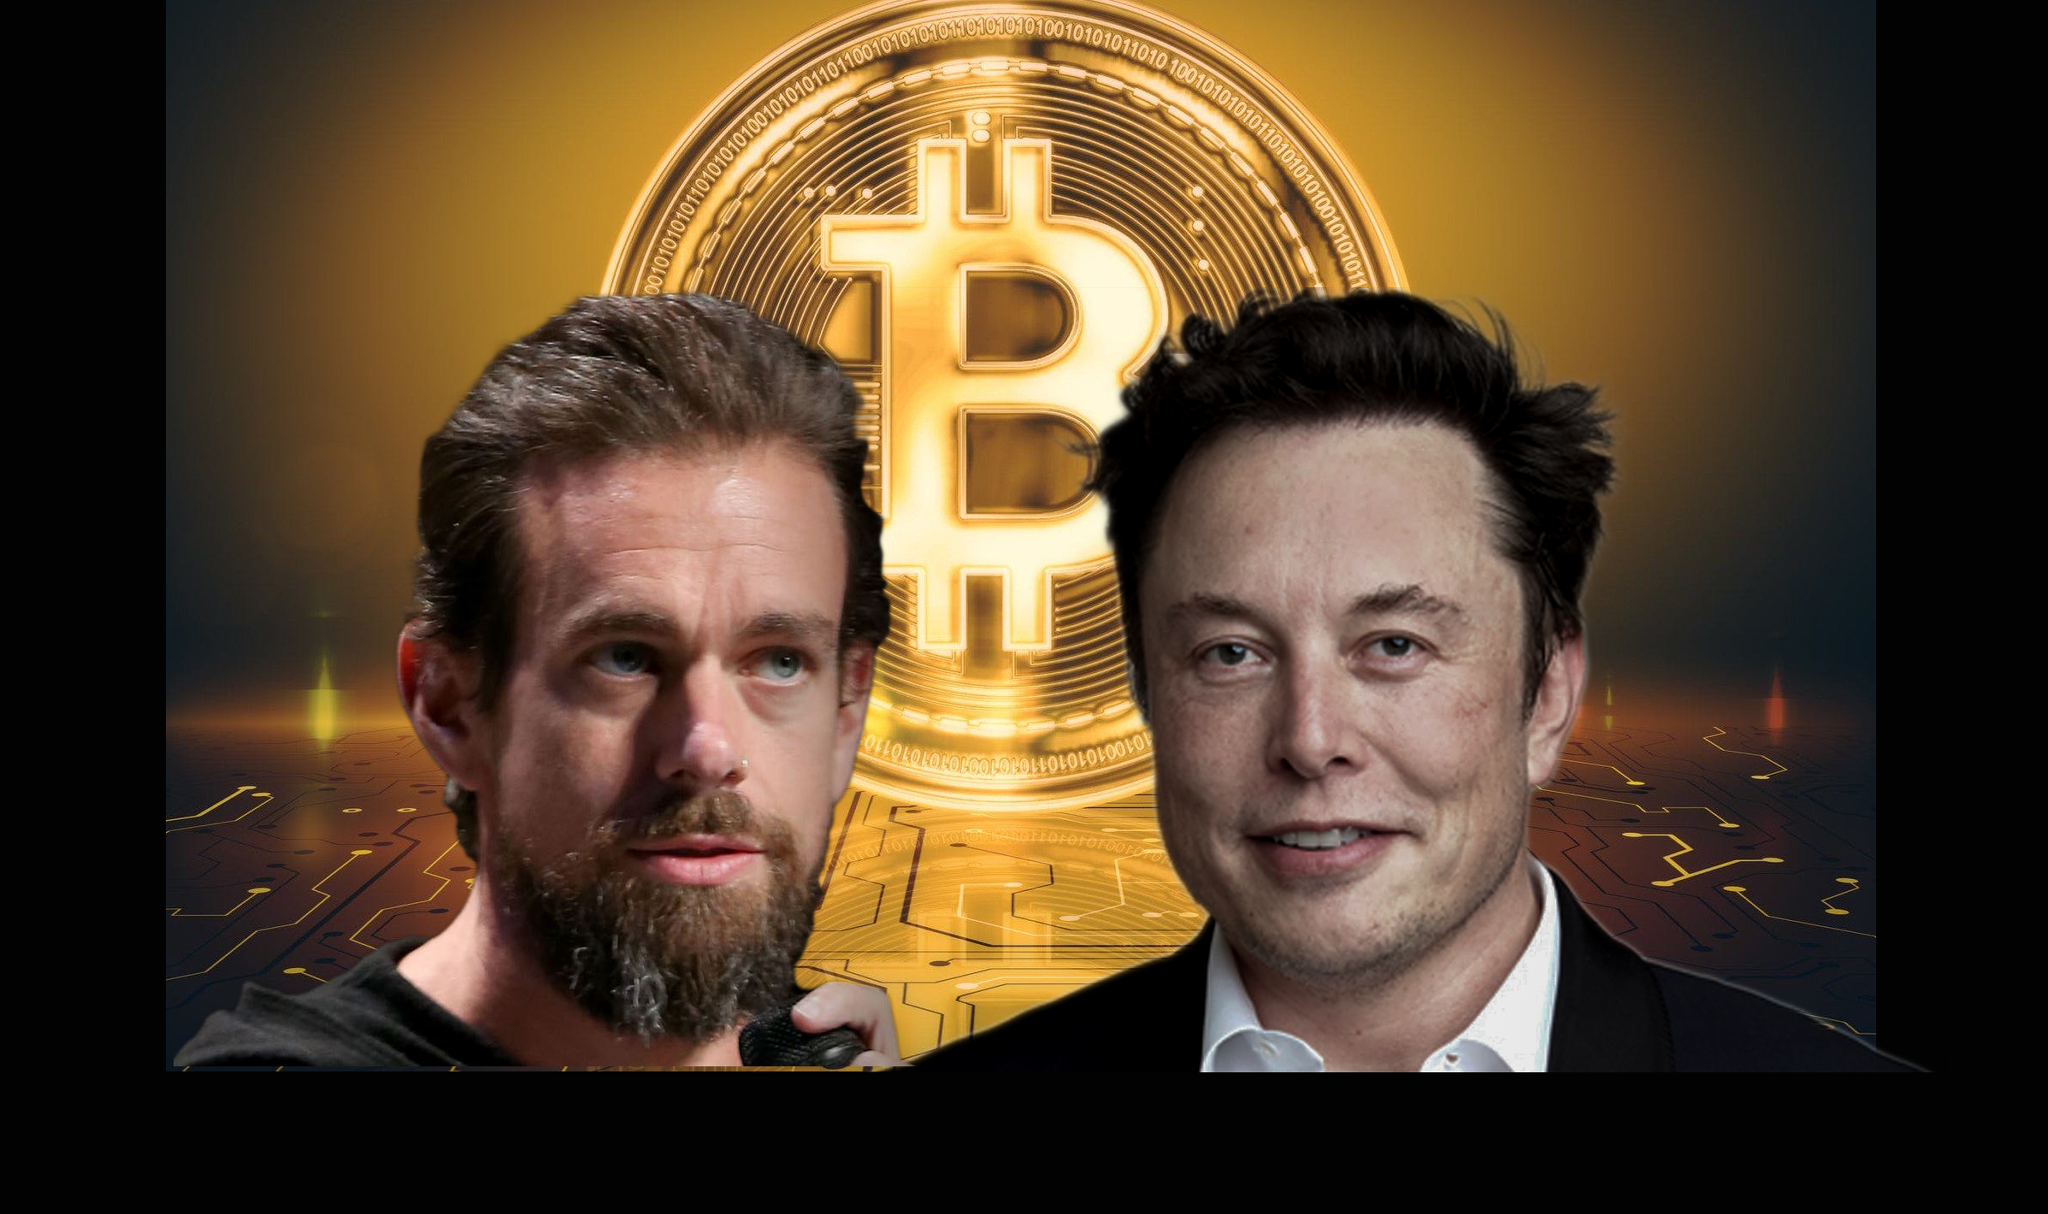 Elon Musk and Jack Dorsey Bitcoin Debate Looms Large for Crypto's Future